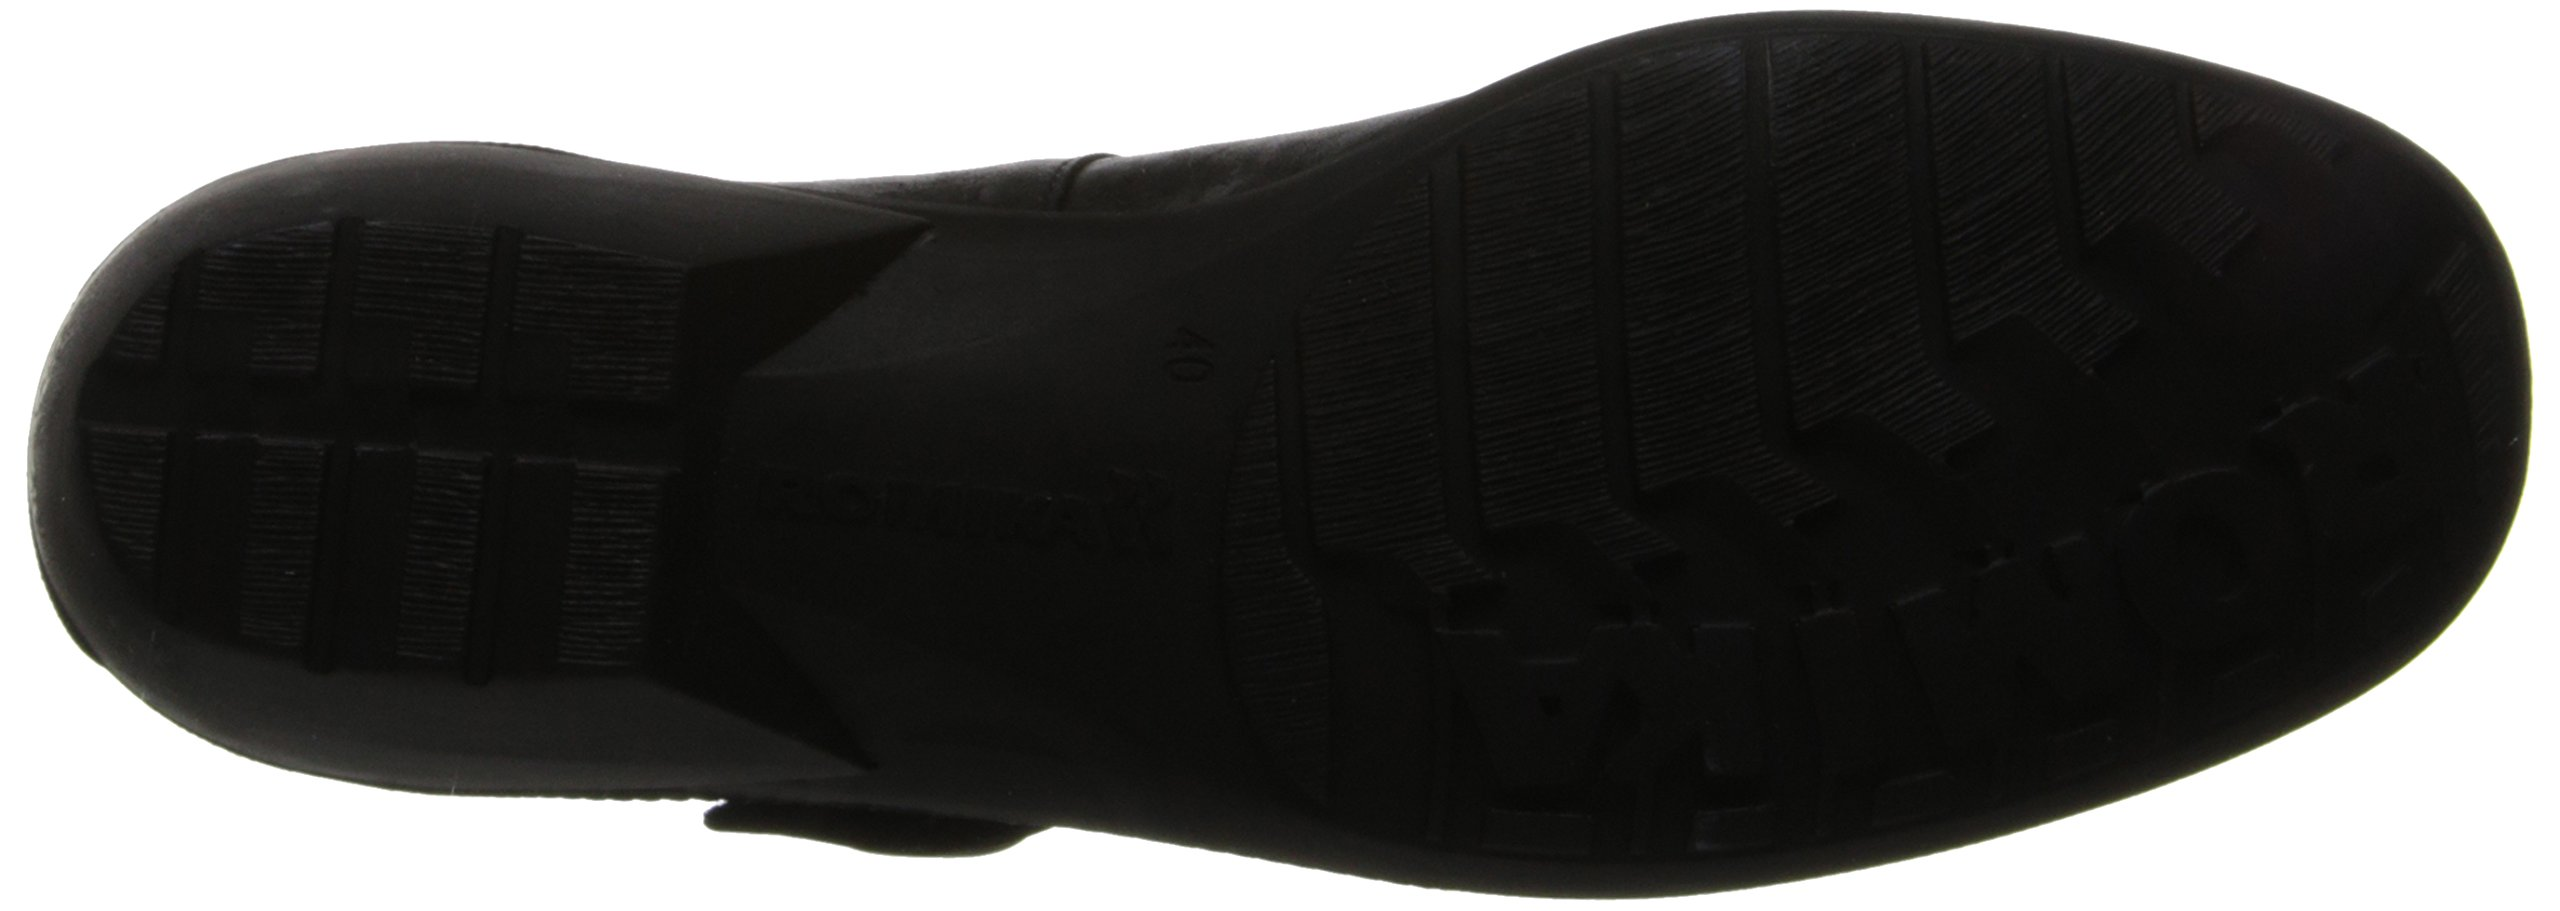 Romika Women's Citylight 87 Mary Jane Flat,Black,39 BR/8-8.5 M US by Romika (Image #3)